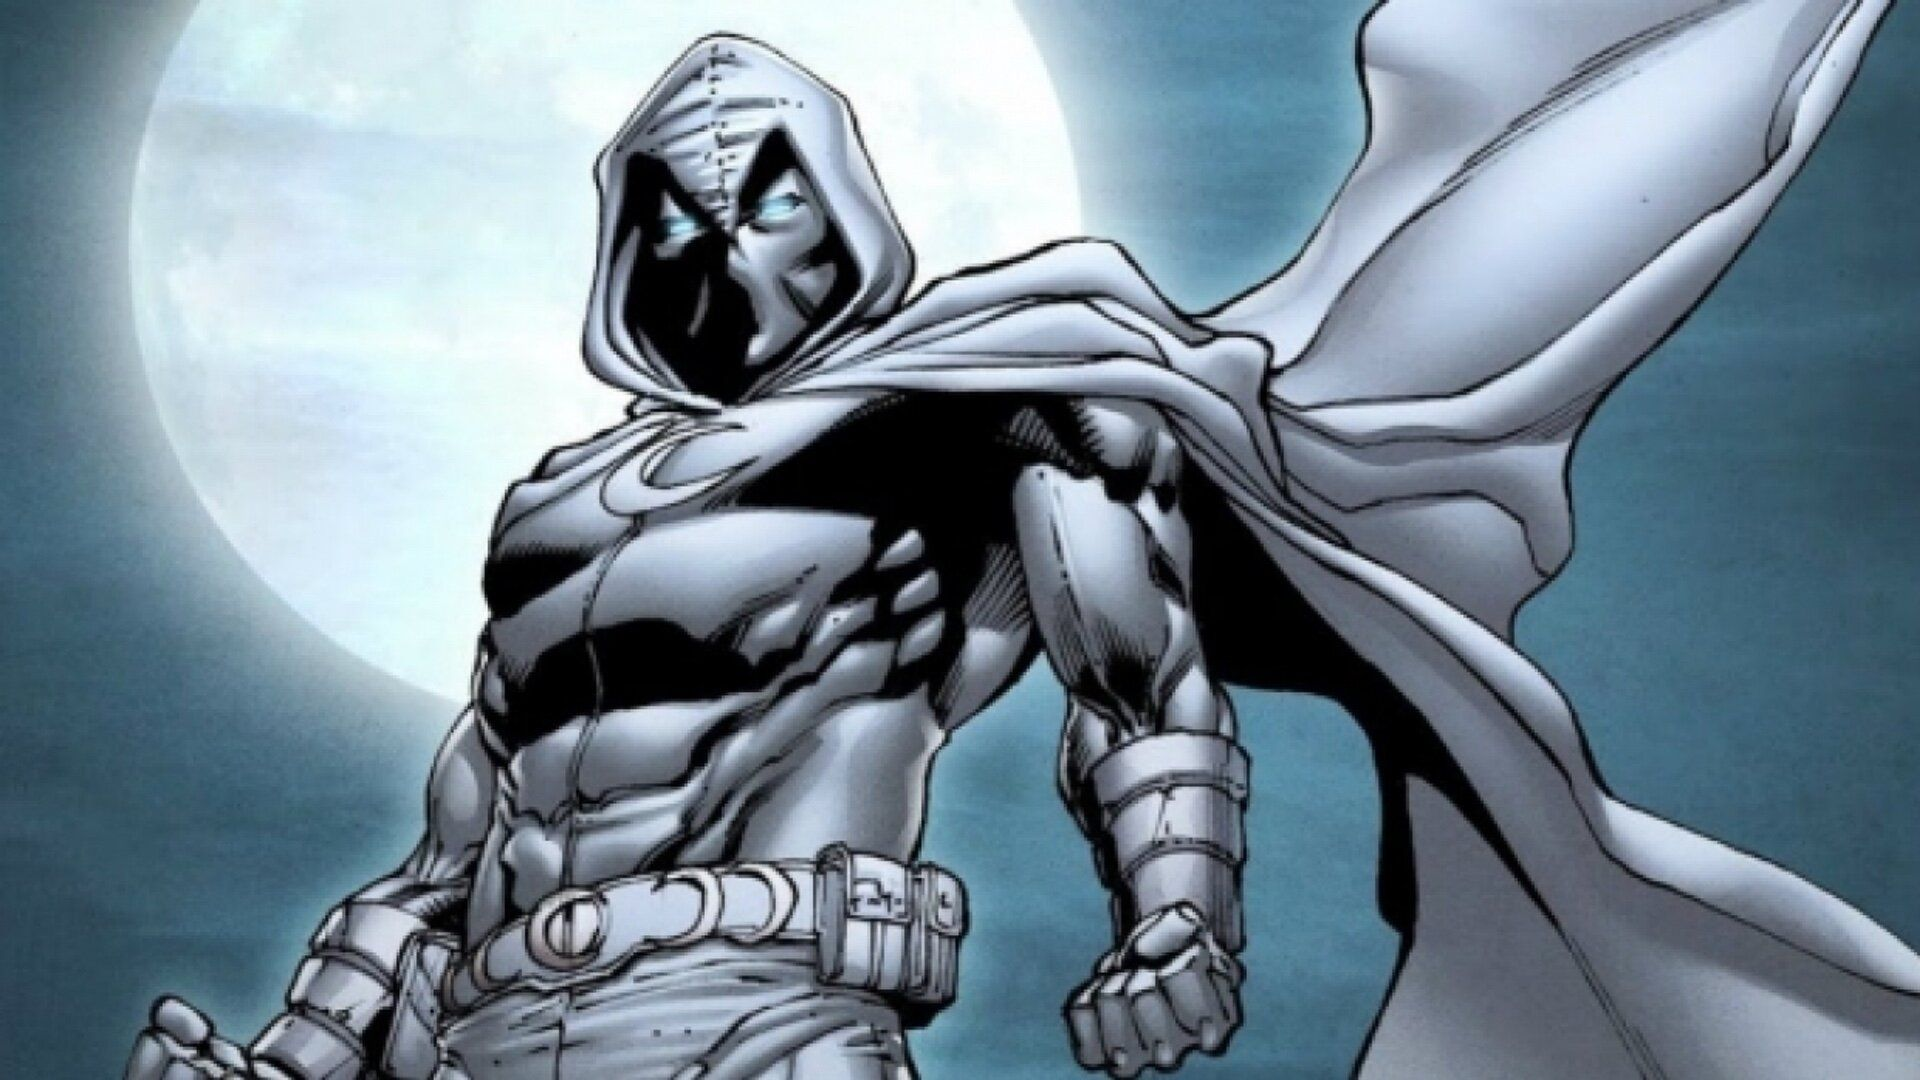 Moon Knight stands before the Moon as my second character recommendation.